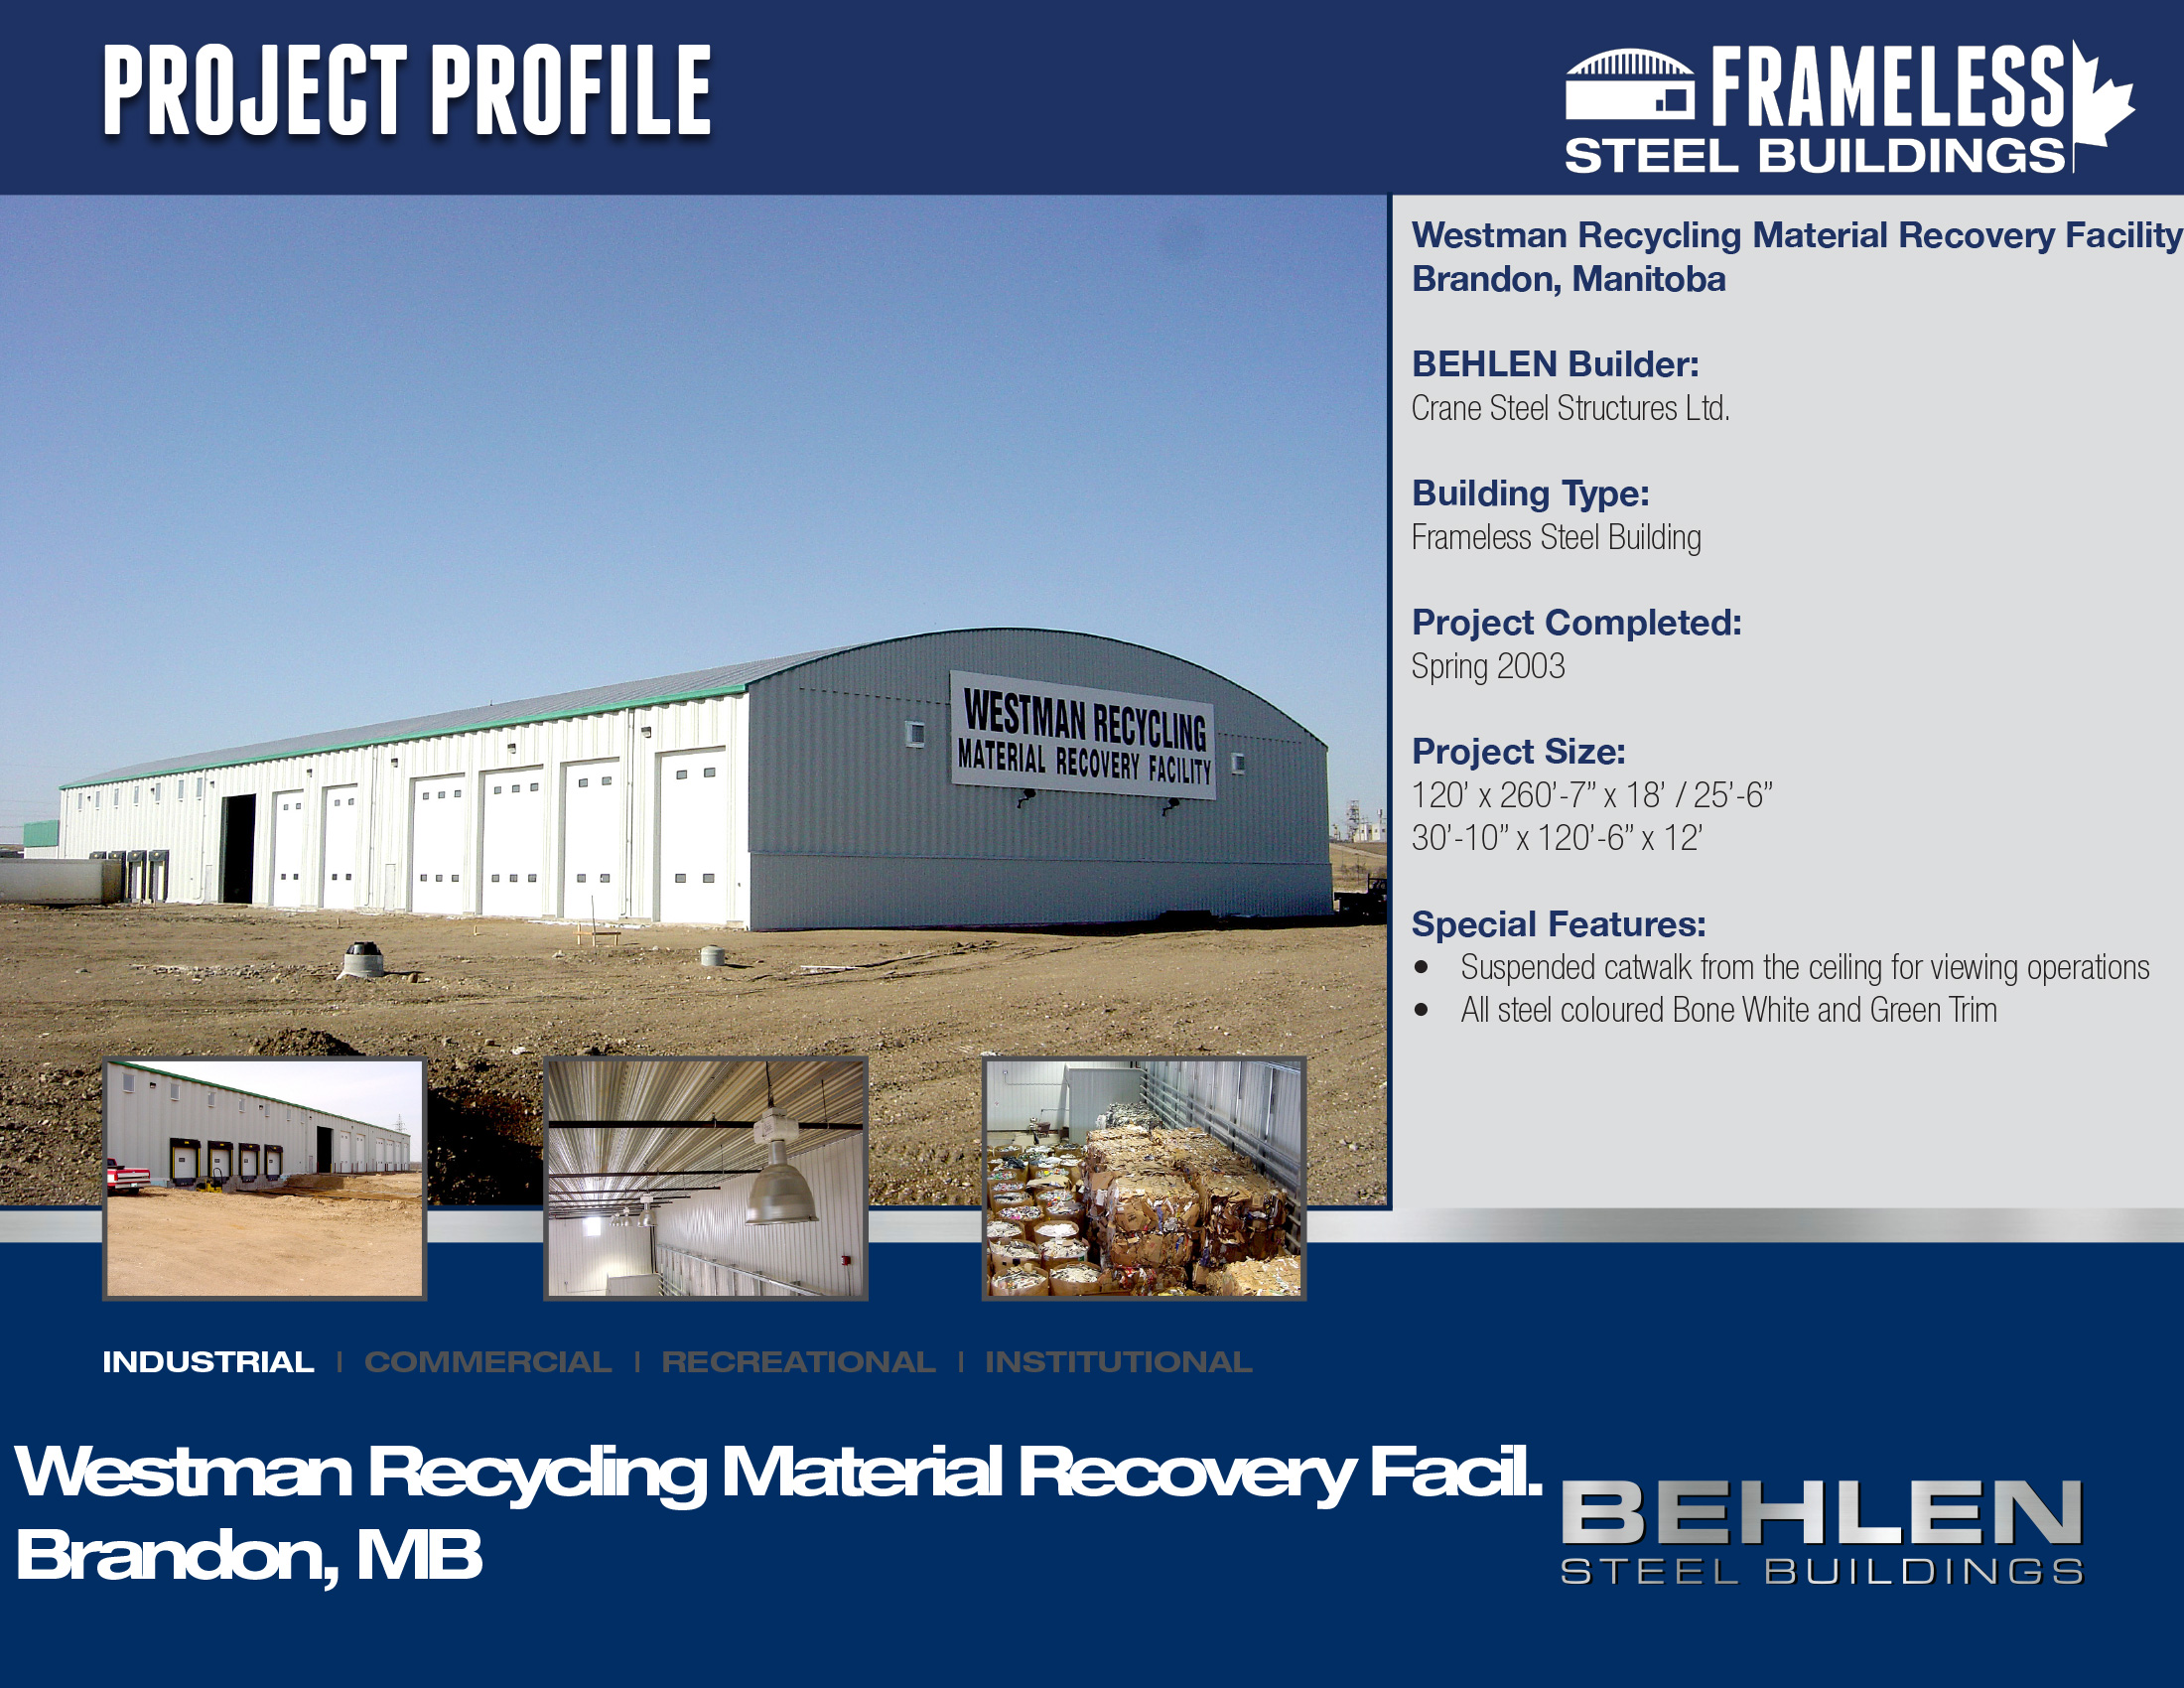 Westman Recycling Material Recovery Facility